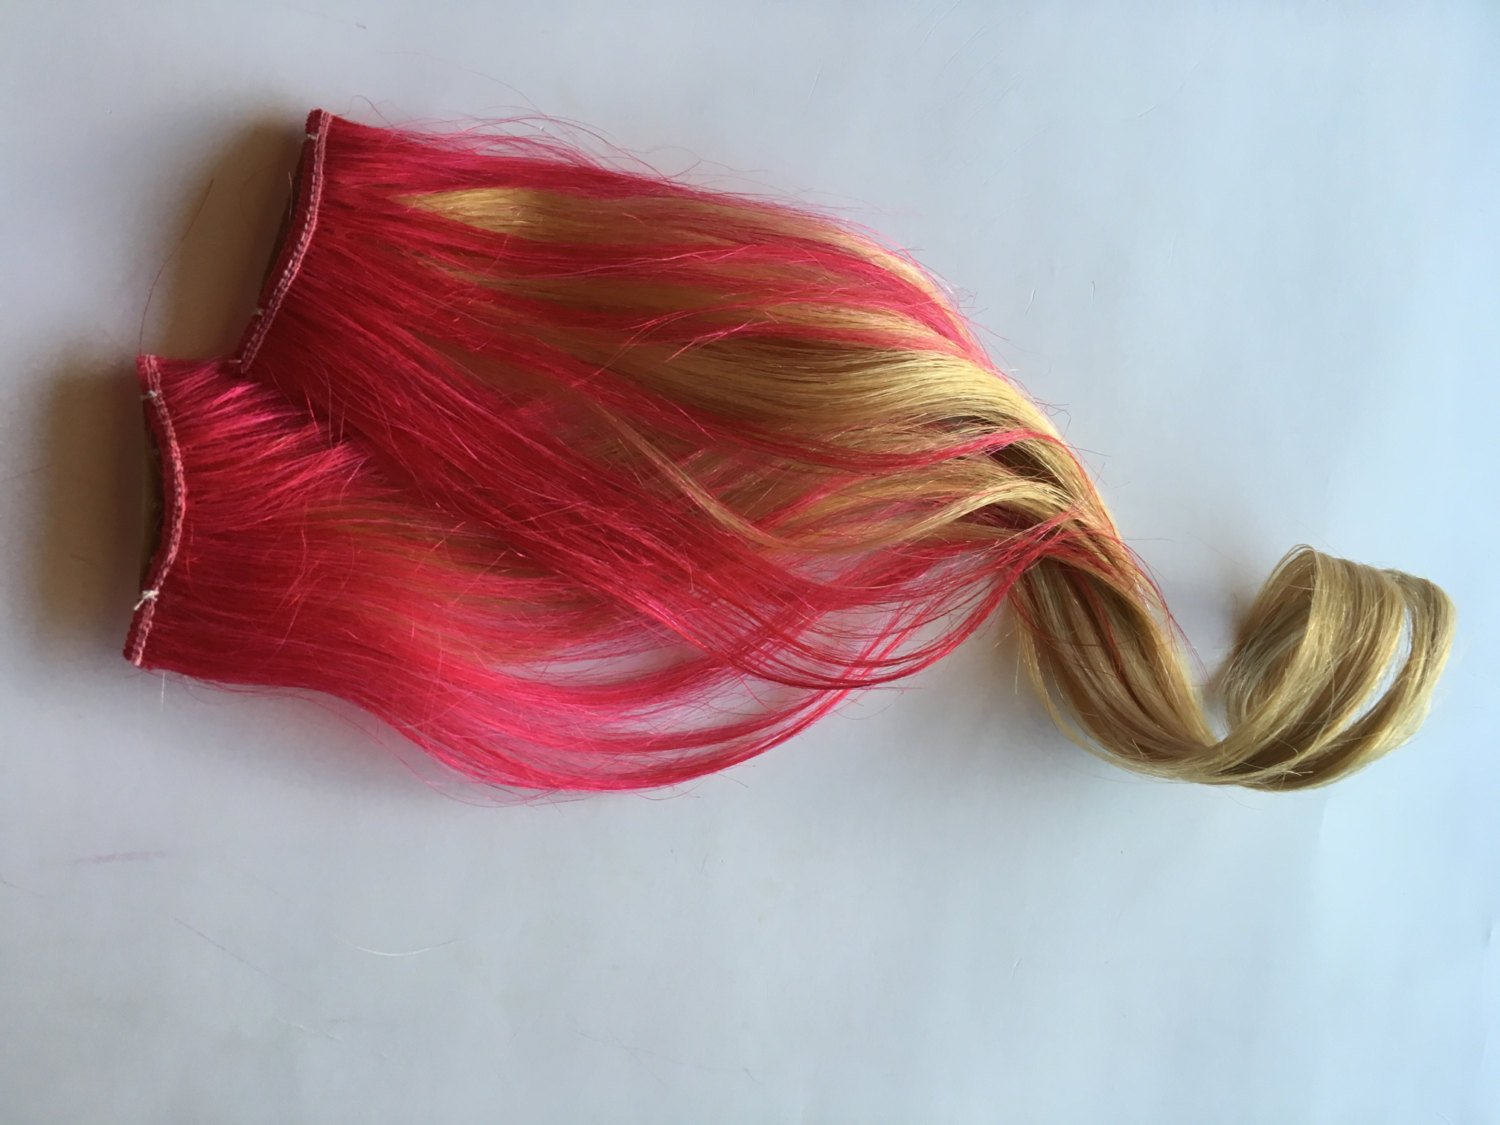 Ombre Human Hair Extensions Hot Pink and Blonde Clip in Streaks or Tape style 18 inch length